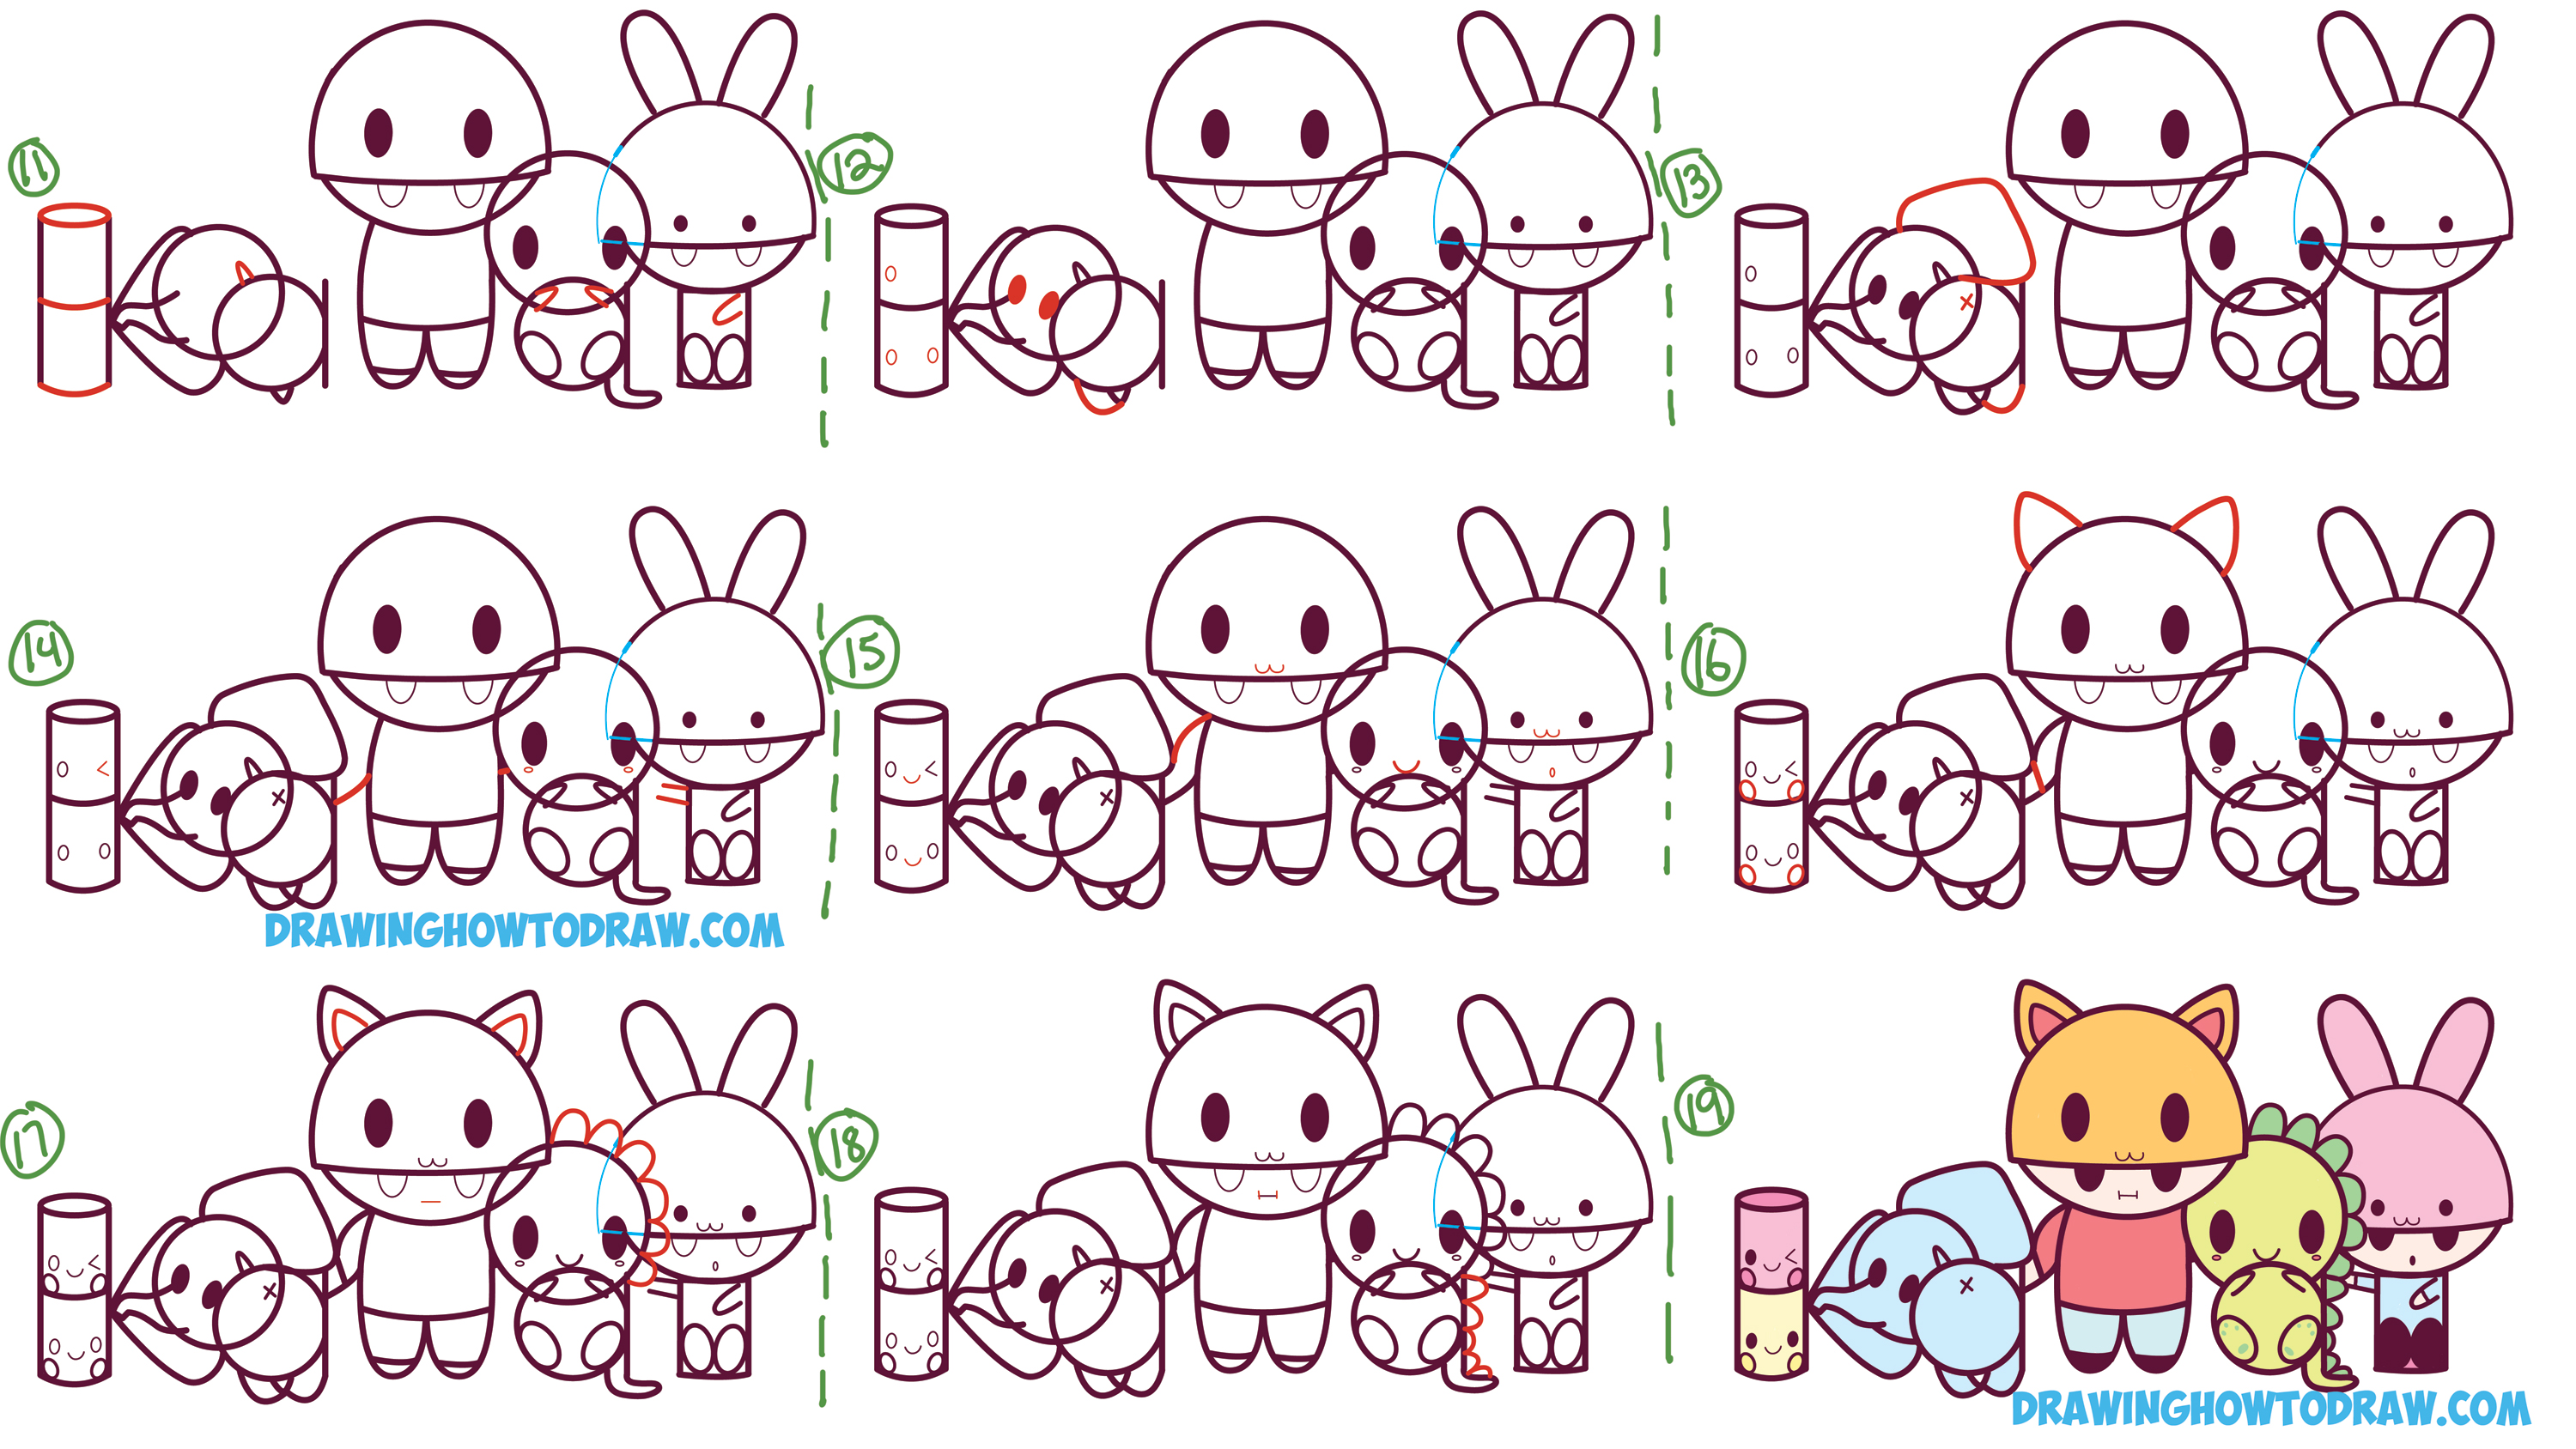 How To Draw Kawaii Characters, Animals, And People From